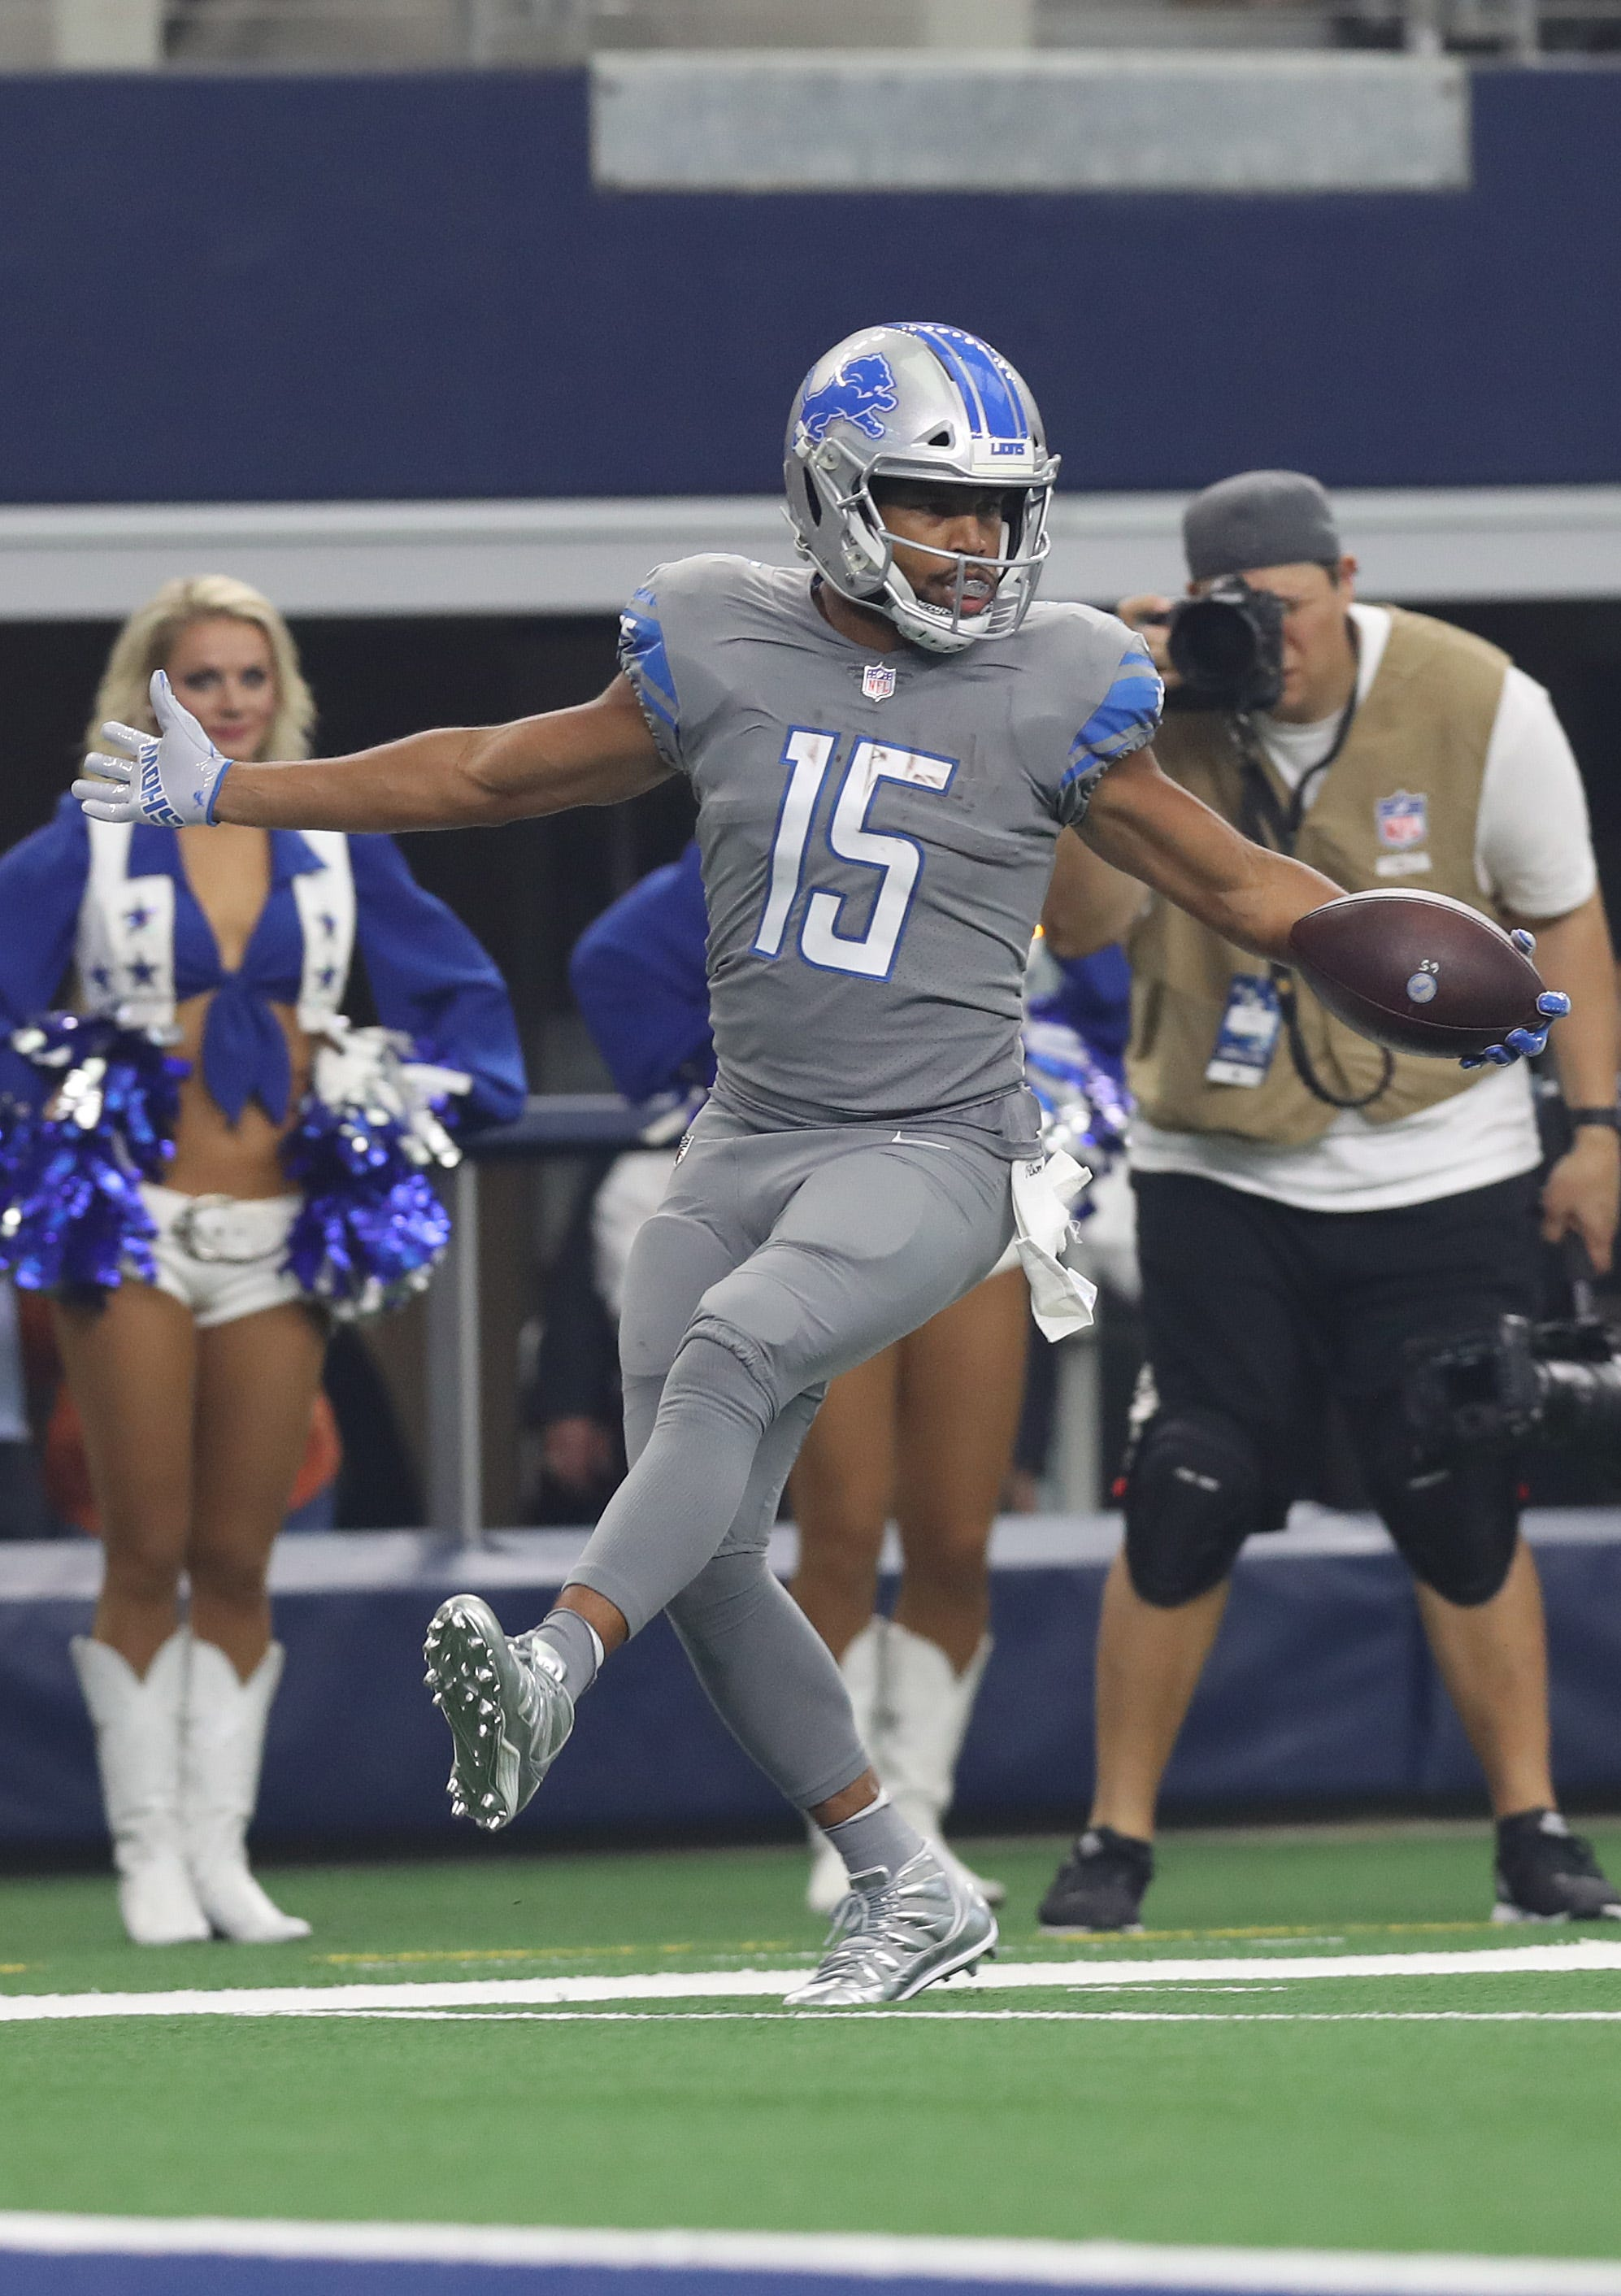 NFL Week 10 matchups to watch: Will Golden Tate burn Cowboys in Eagles debut?